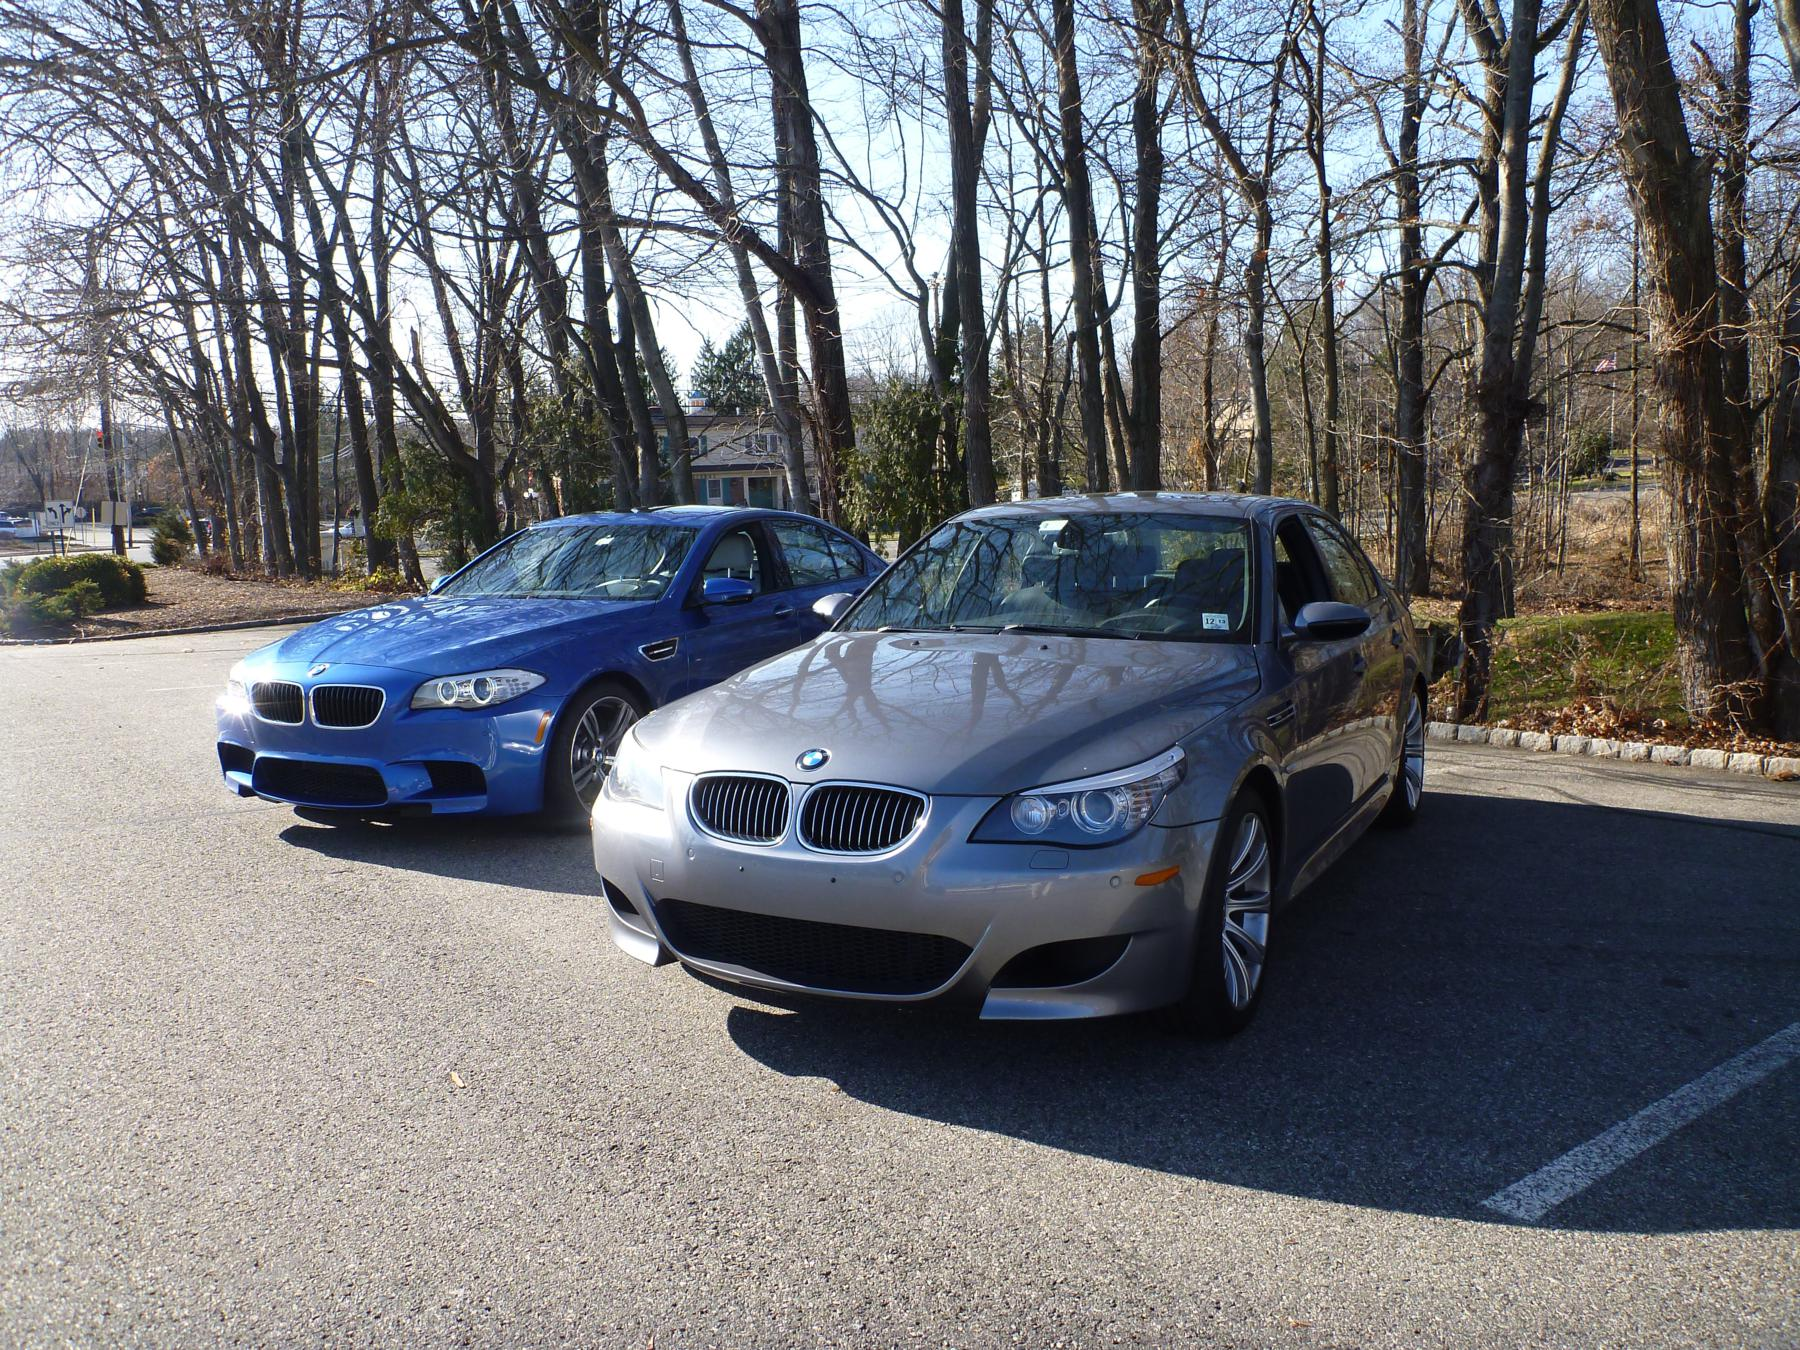 F10 M5 at NJ Cars and Coffee - 12/18/2011-12-18-2011-050_1800x1350.jpg